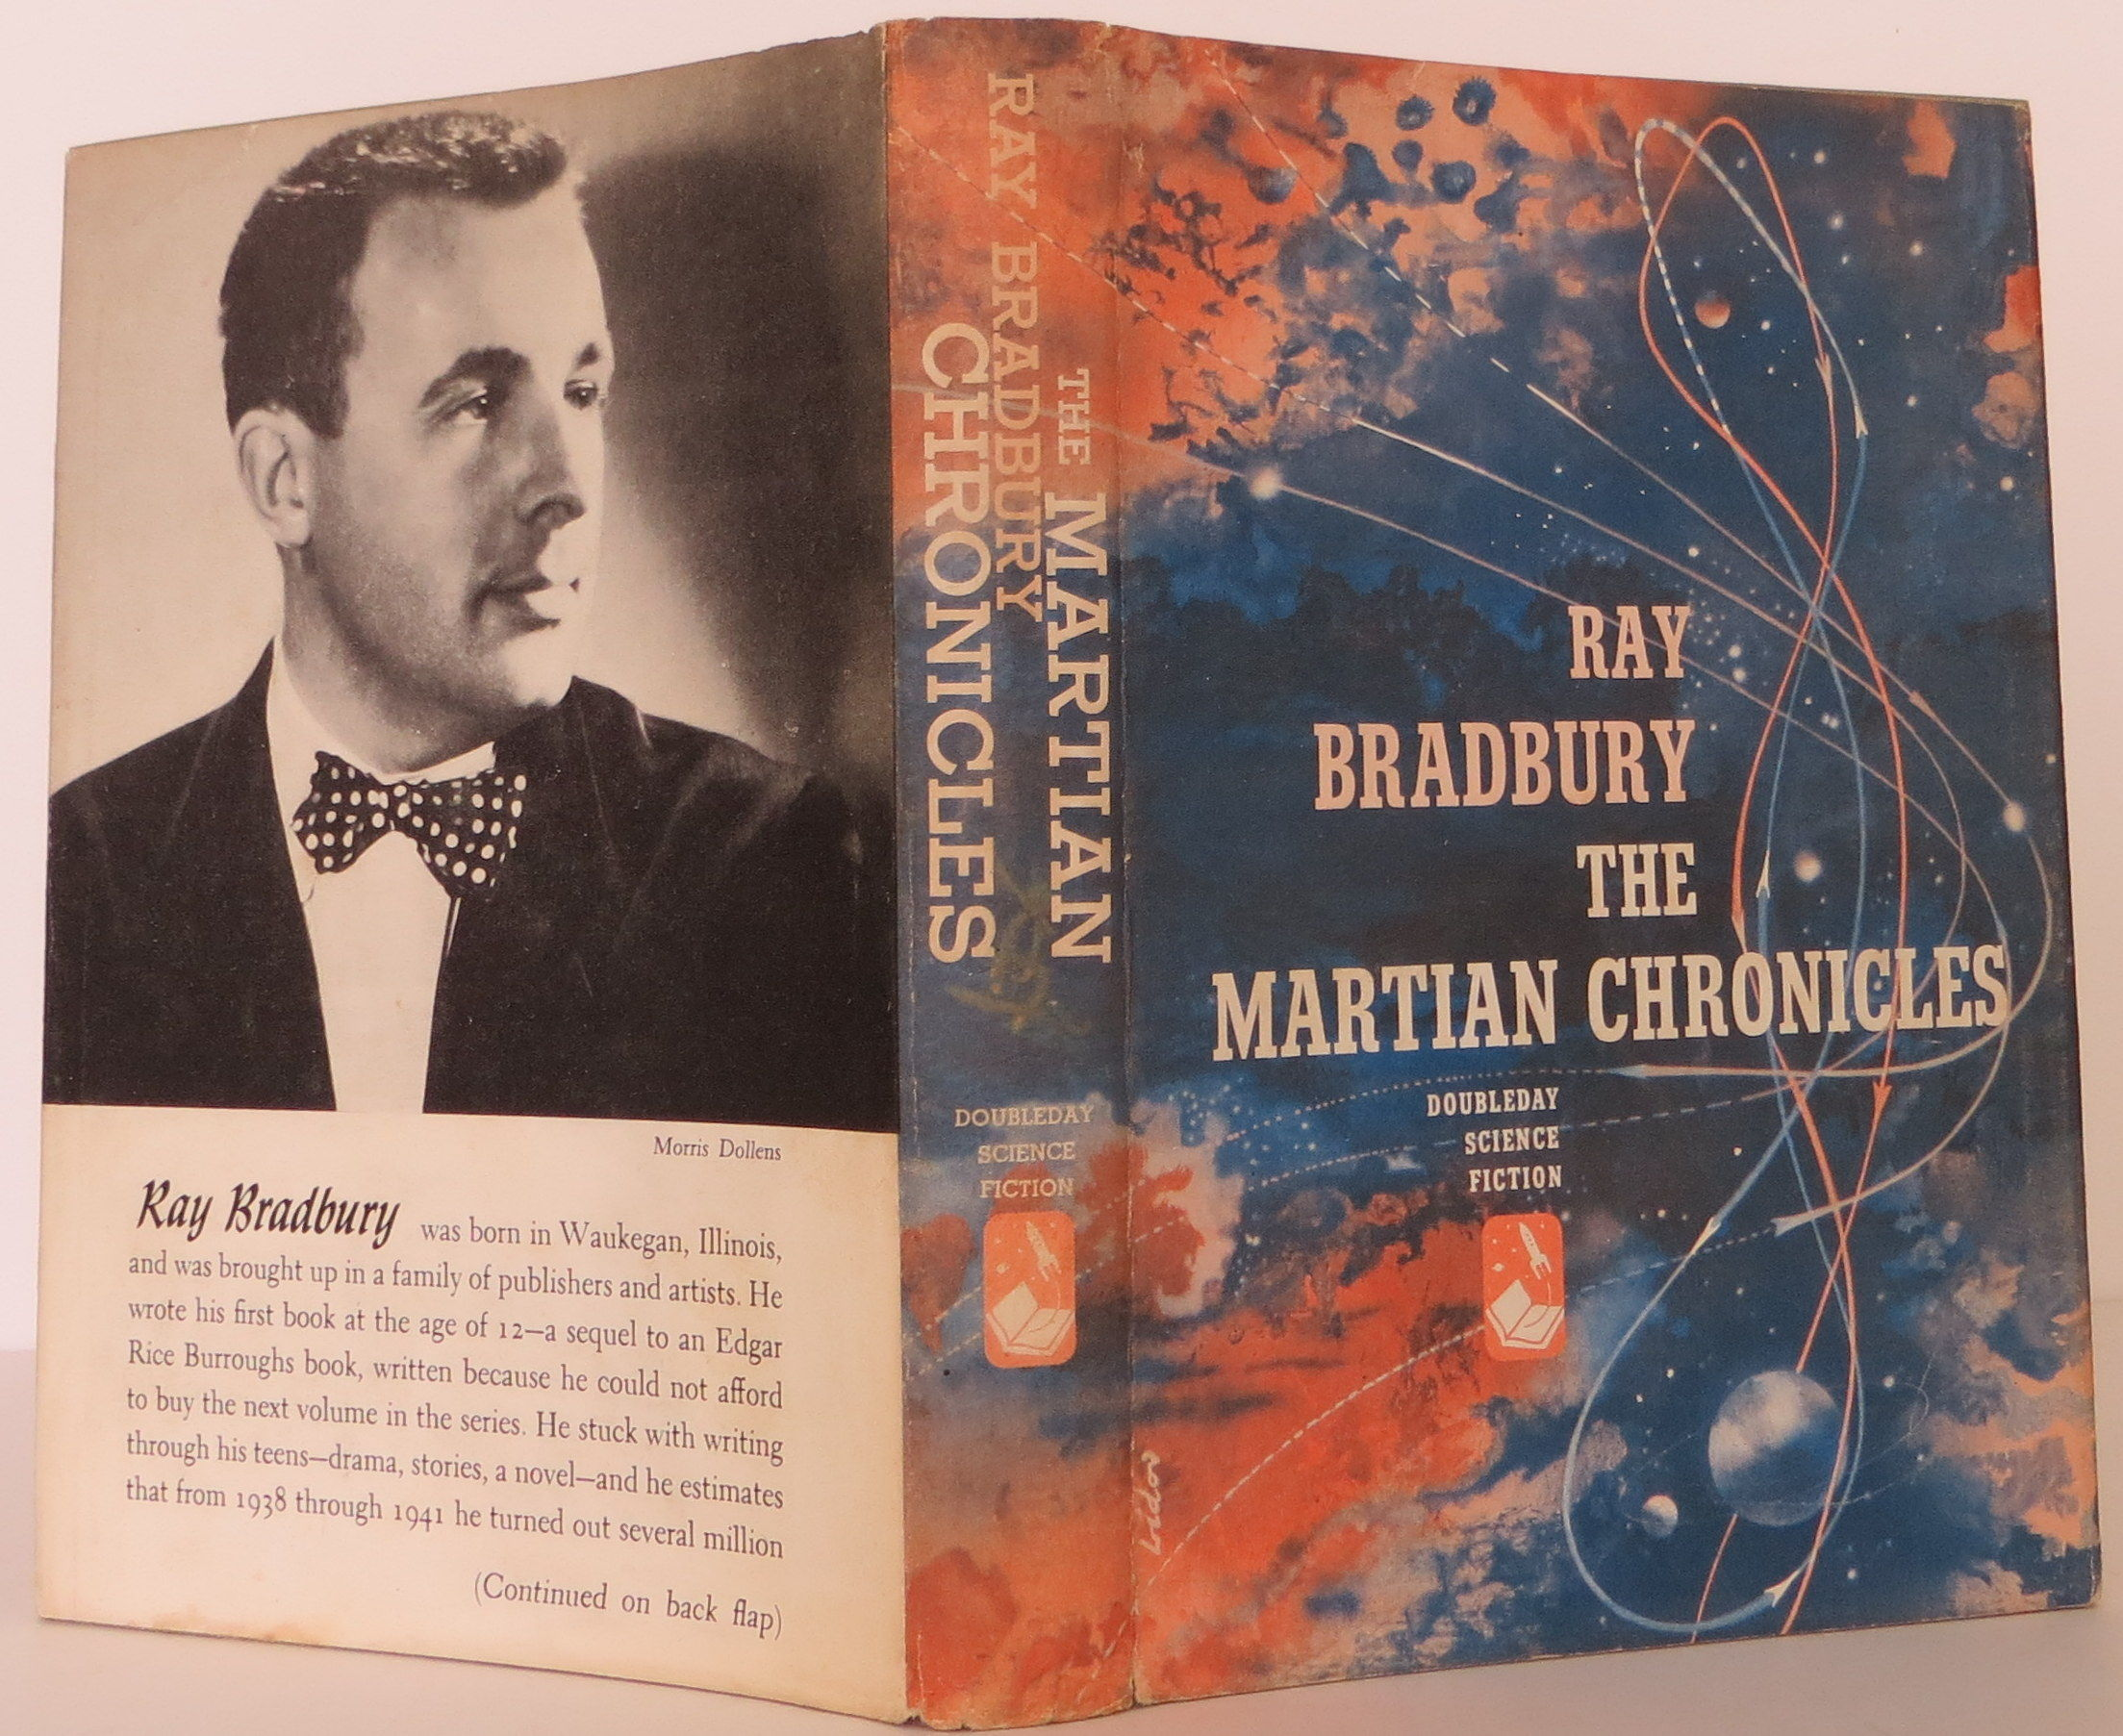 an overview of ray bradburys the martian chronicles The martian chronicles has 166,821 ratings and 5,646 reviews mark said: riddle me a martian riddle۞a riddle: what walks on two legs, uses two arms.